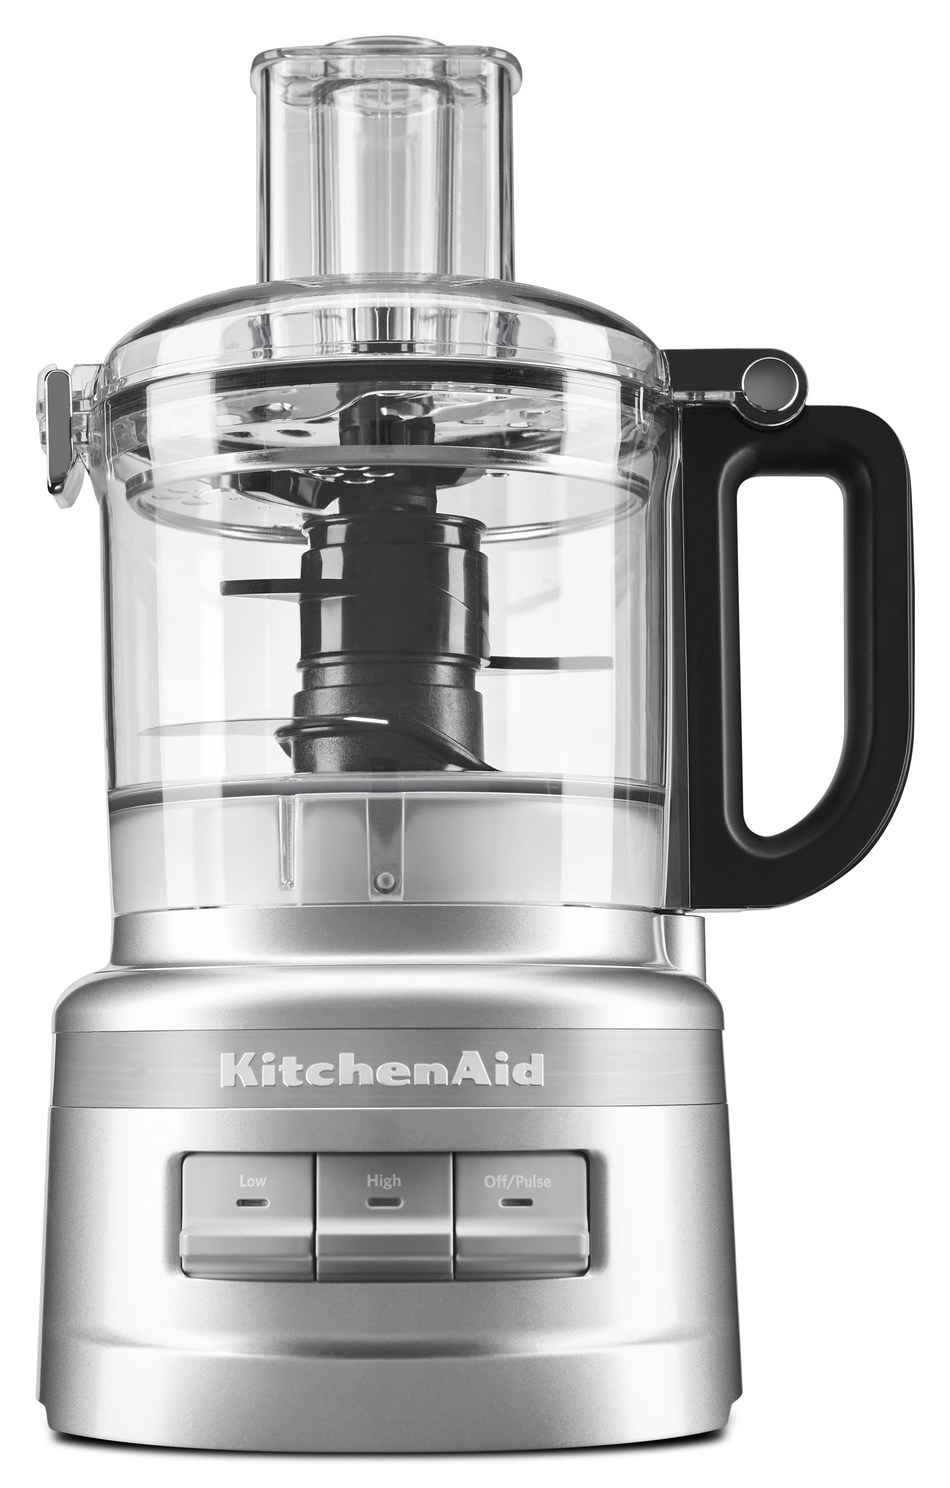 Launching in April, the KitchenAid 7 Cup Food Processor is easy to use, clean and store.